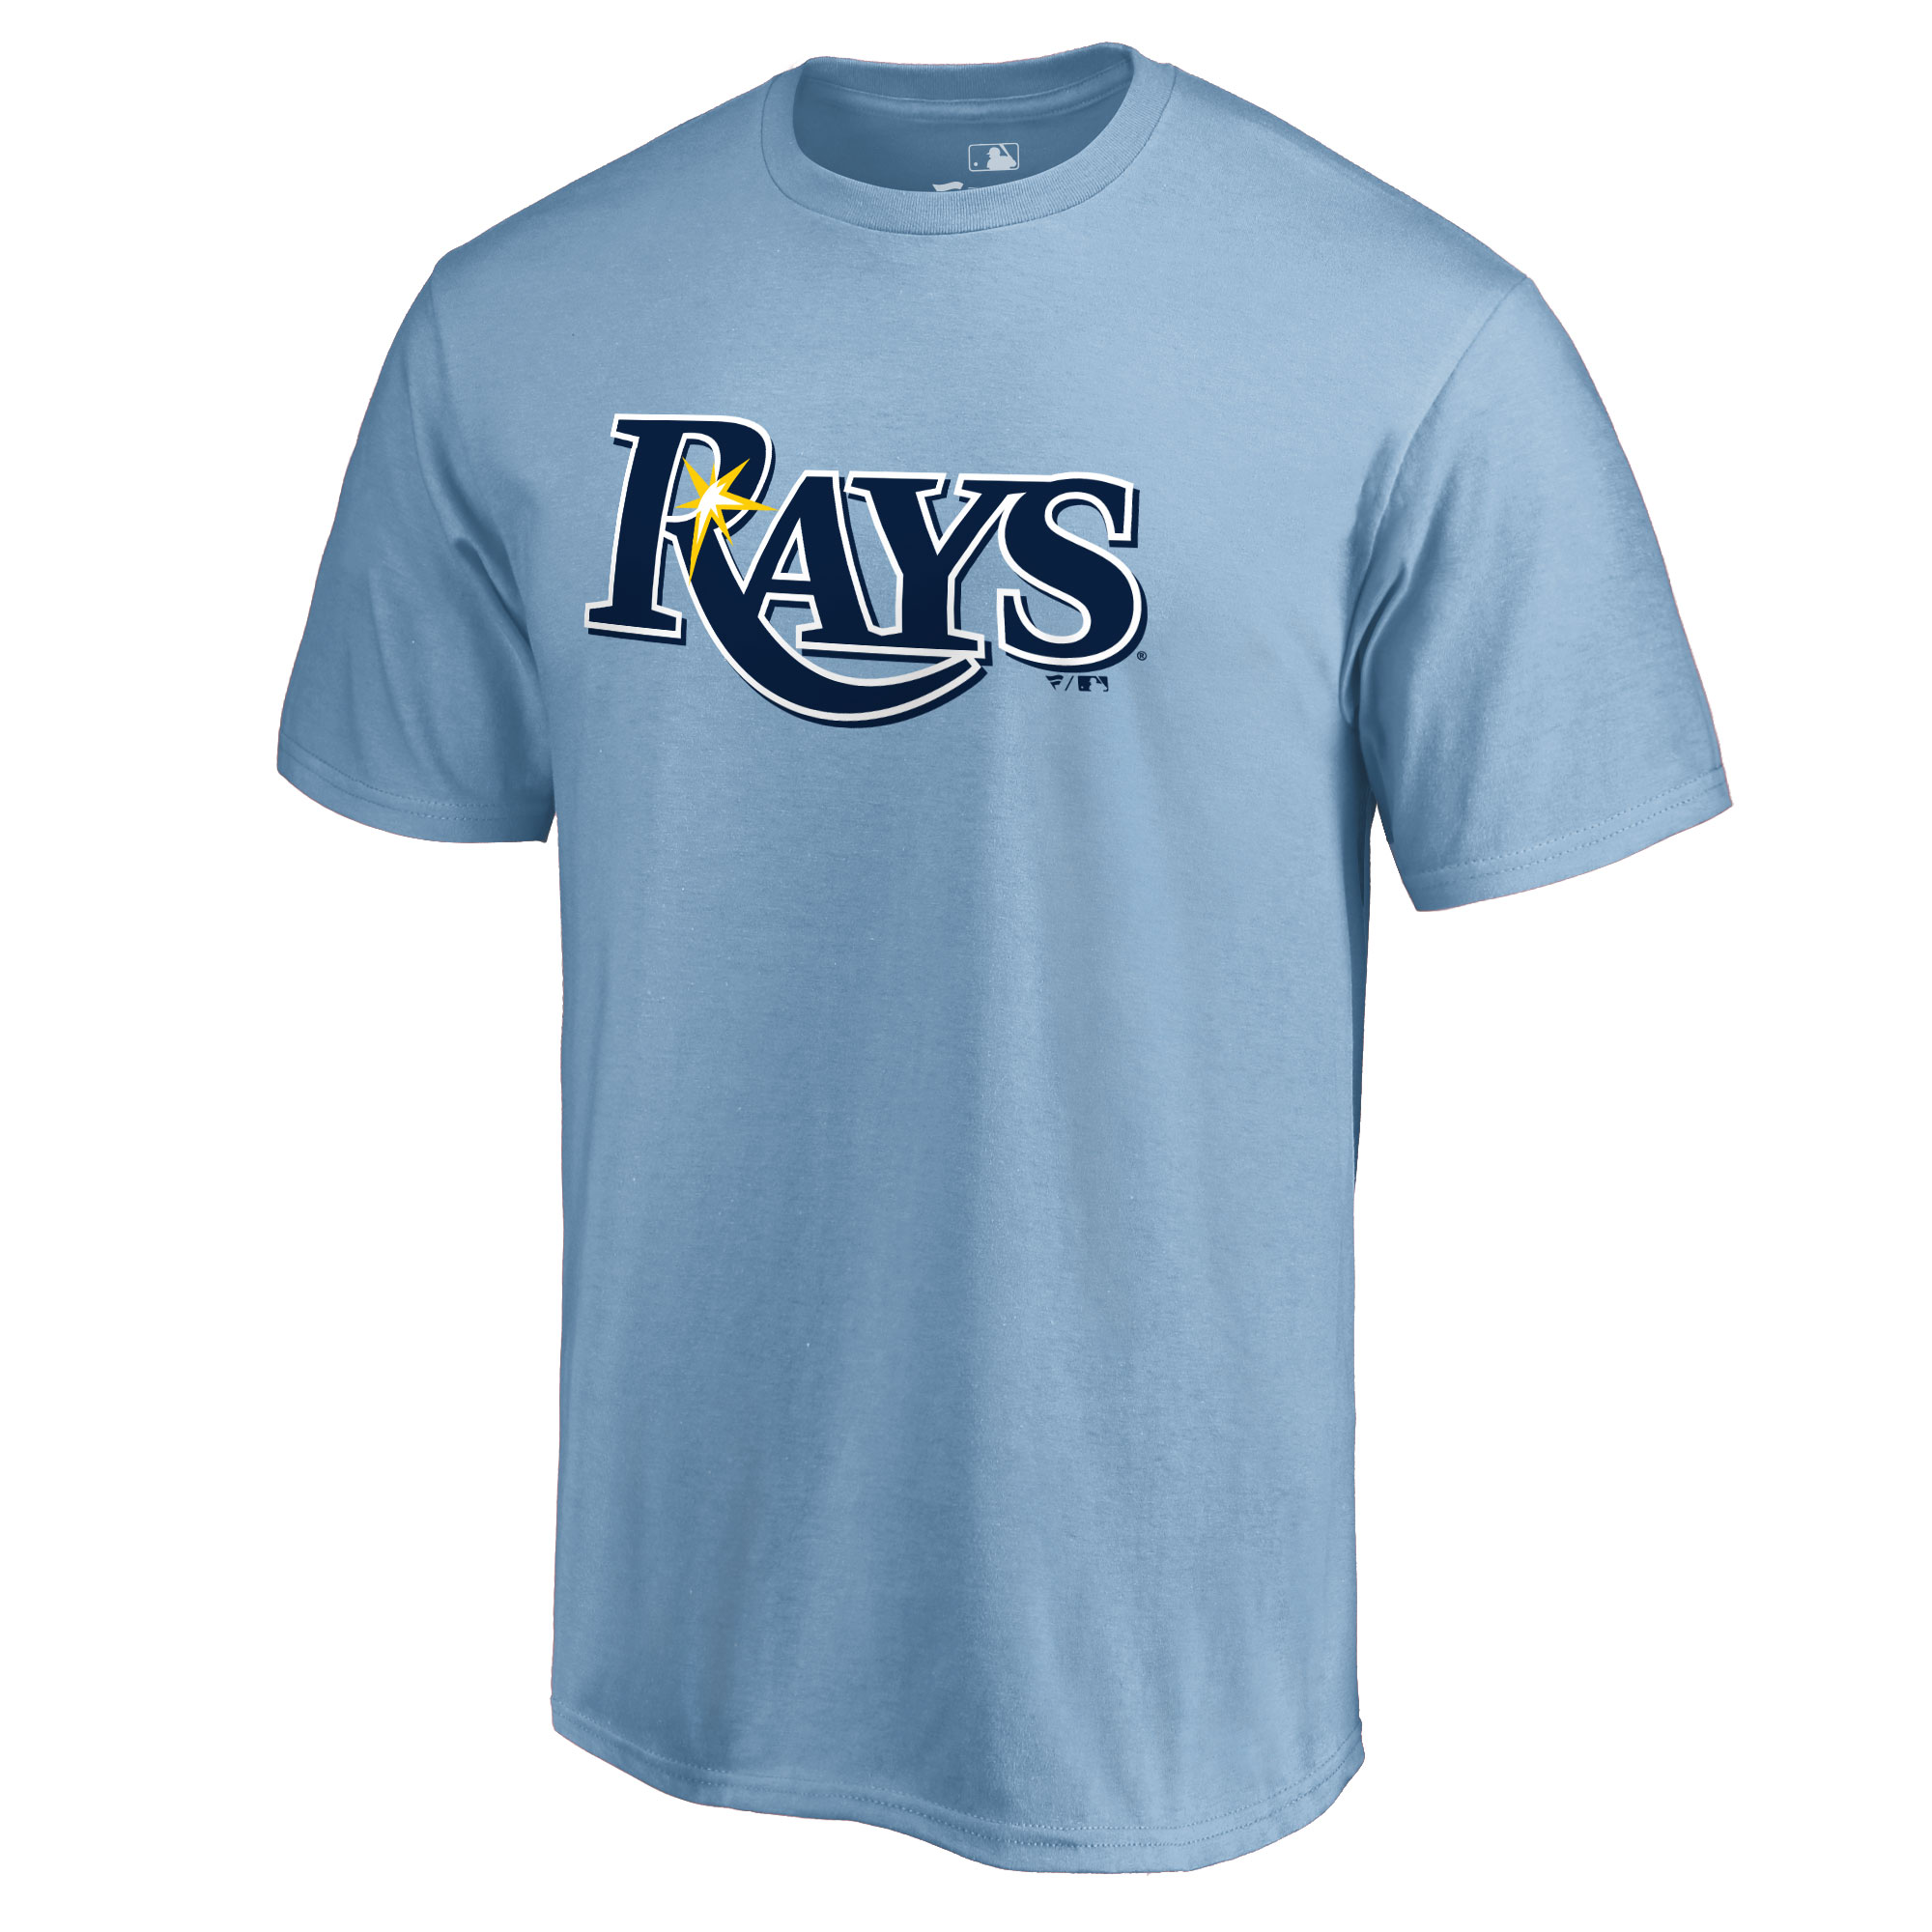 Tampa Bay Rays Secondary Color Primary Logo T-Shirt - Light Blue